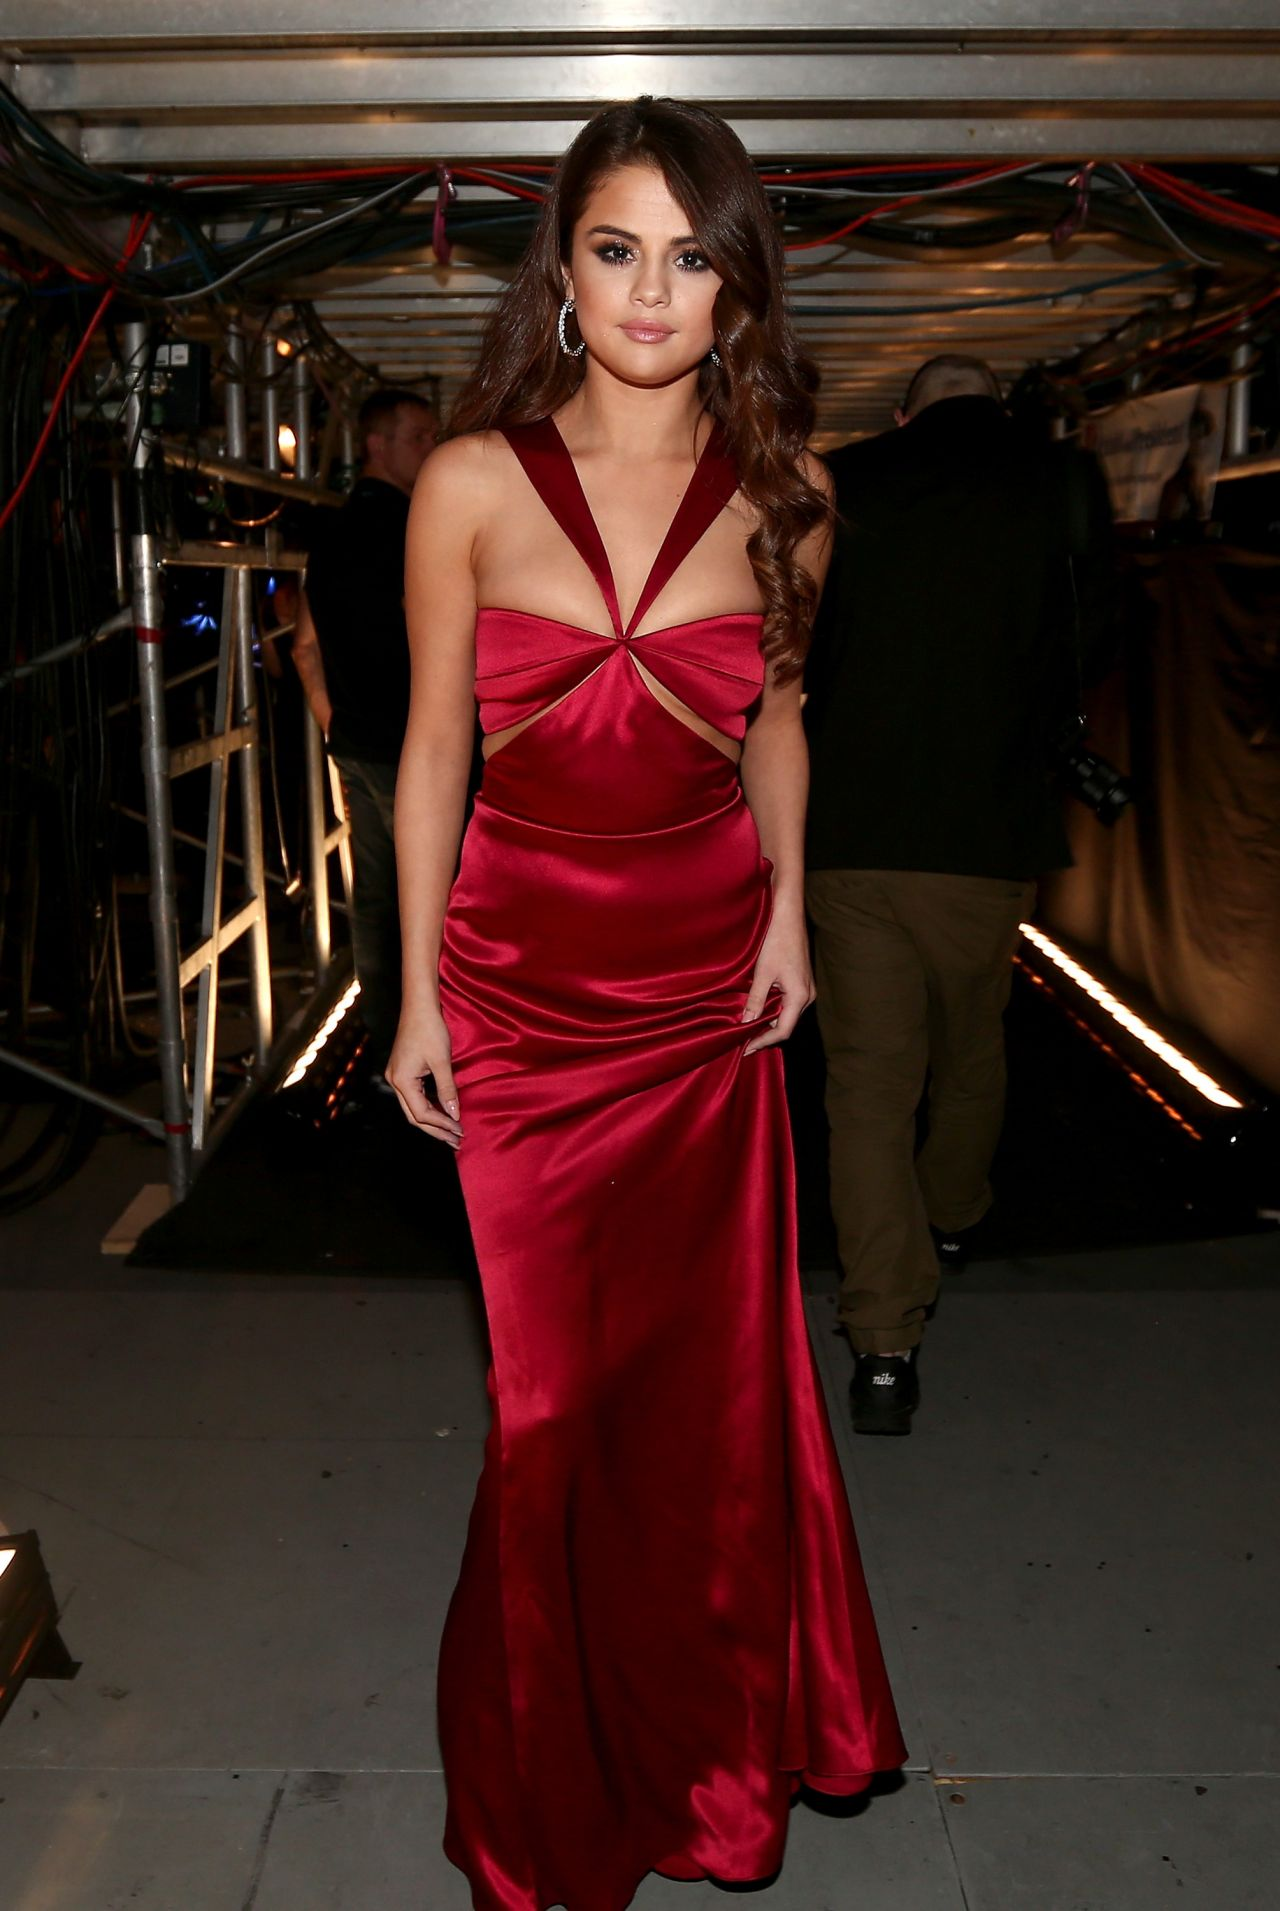 selena-gomez-grammy-awards-2016-staples-center-los-angeles-2-15-2016-1